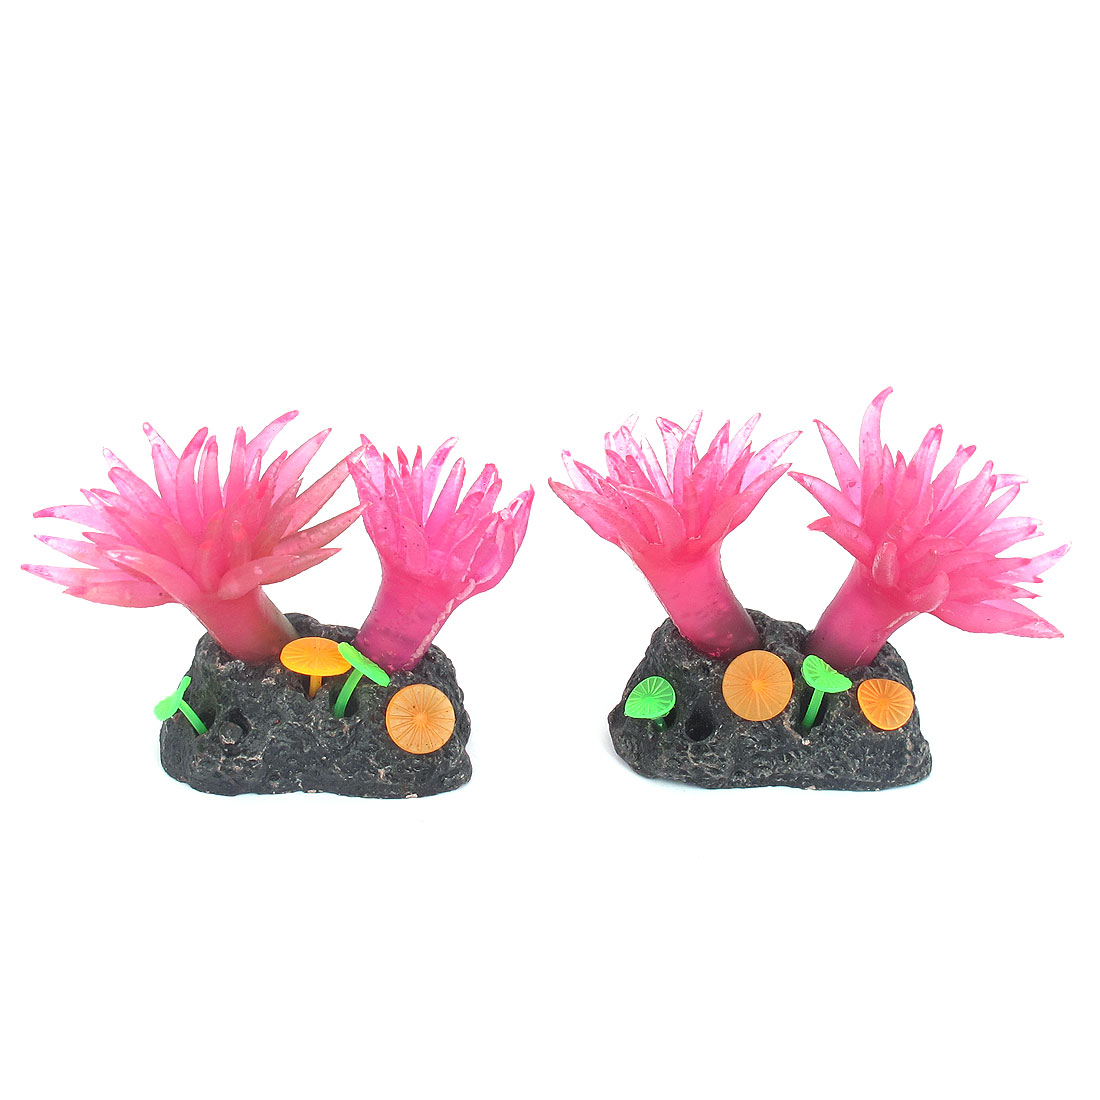 Fish Tank Fishbowl Landscaping Silicone Emulational Aquarium Coral Ornament Aquatic Plant Fuchsia 2pcs